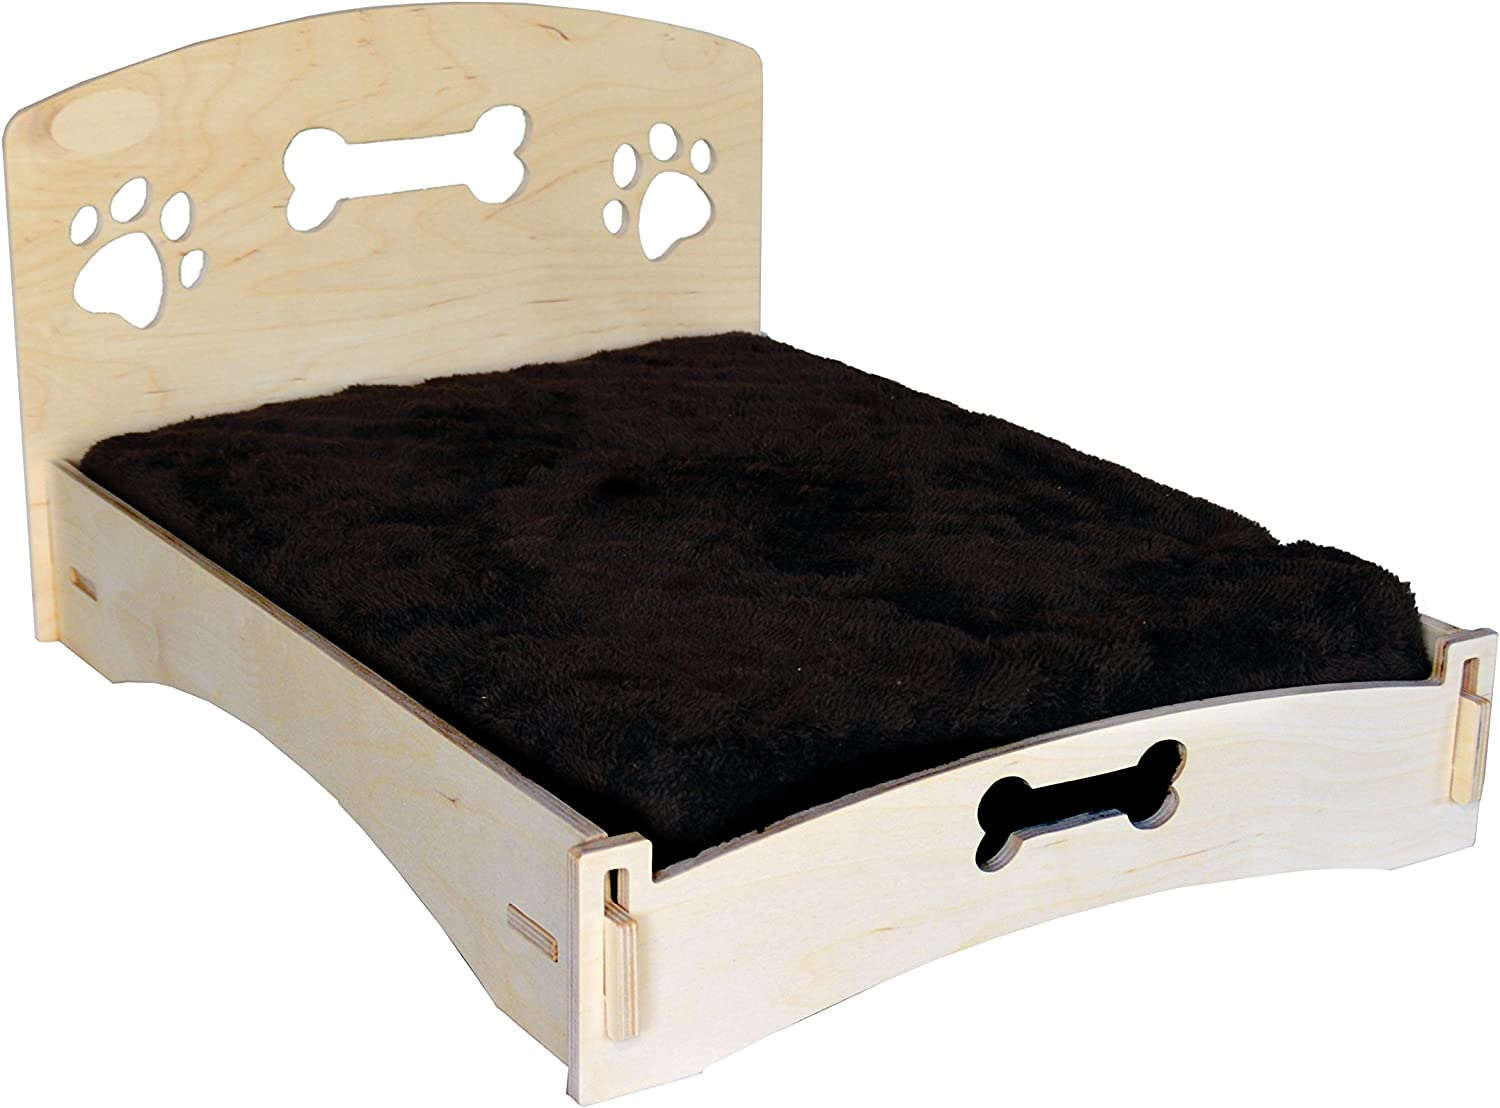 MPI WOOD Small Dog Challenge quality assurance the lowest price SMDOGBD Bed